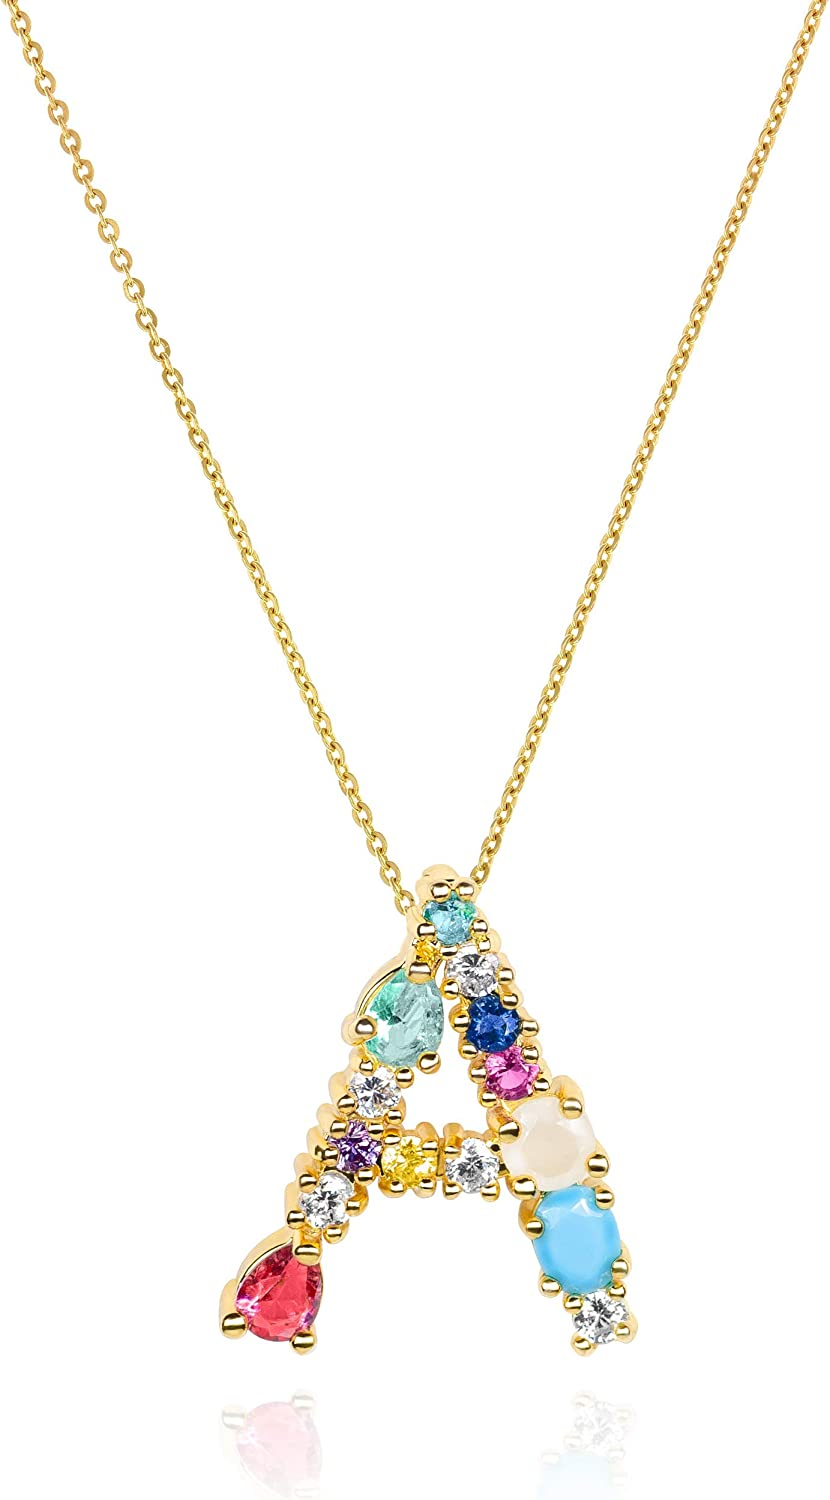 Amazon Com Lavla Initial Letter Necklace 18k Gold Plated Colorful Cubic Zirconia Crystal Pendant For Women Girls 26 Letters Alphabet Pendant A Z 16 2 A Jewelry